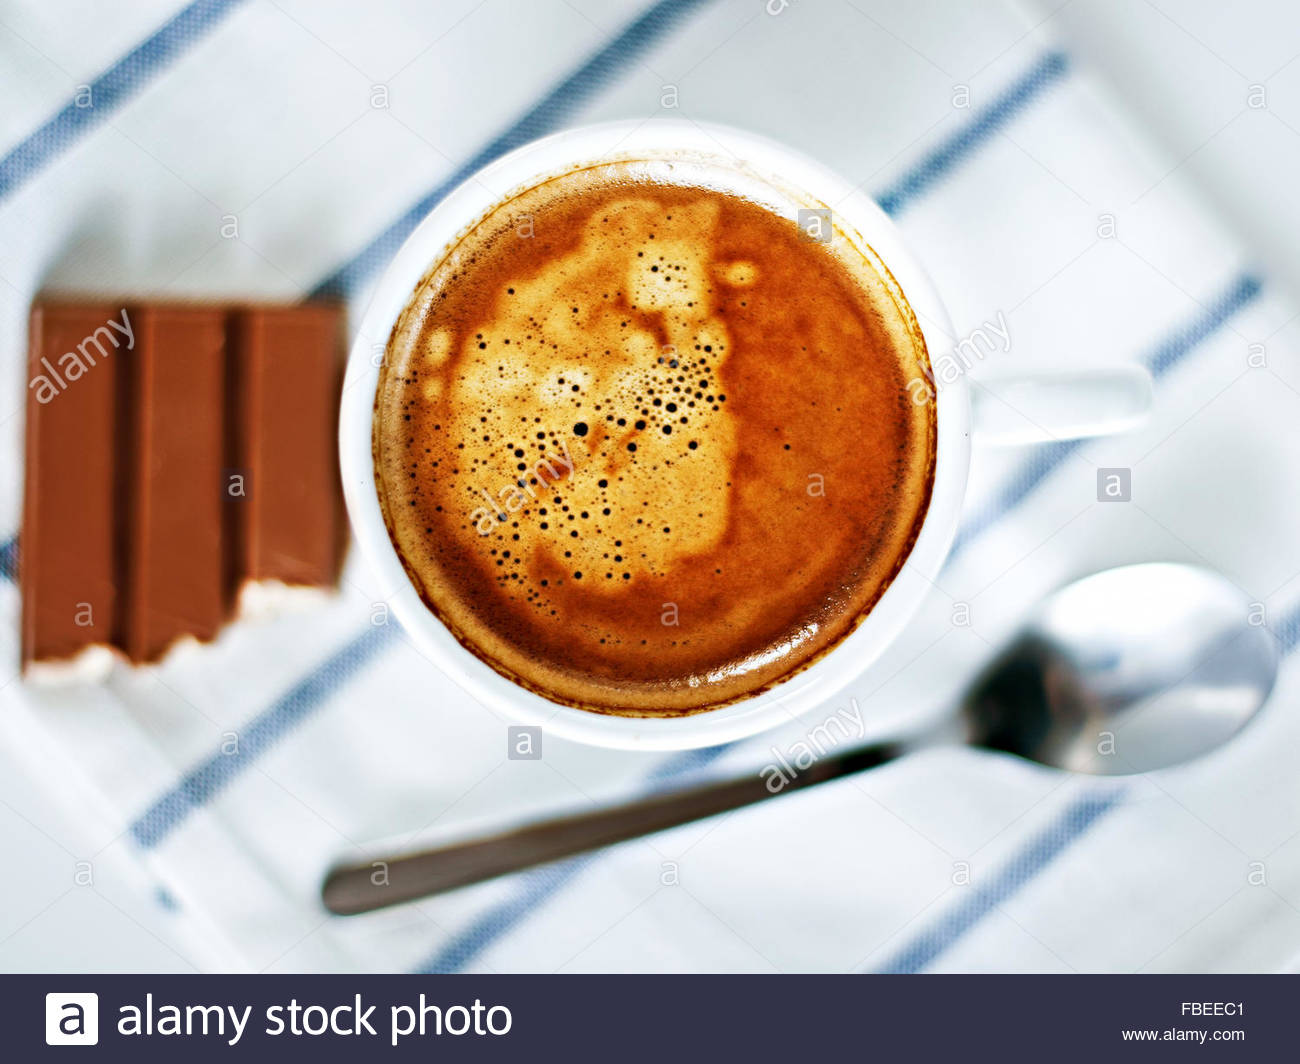 A cup of espresso on a striped towel - Stock Image